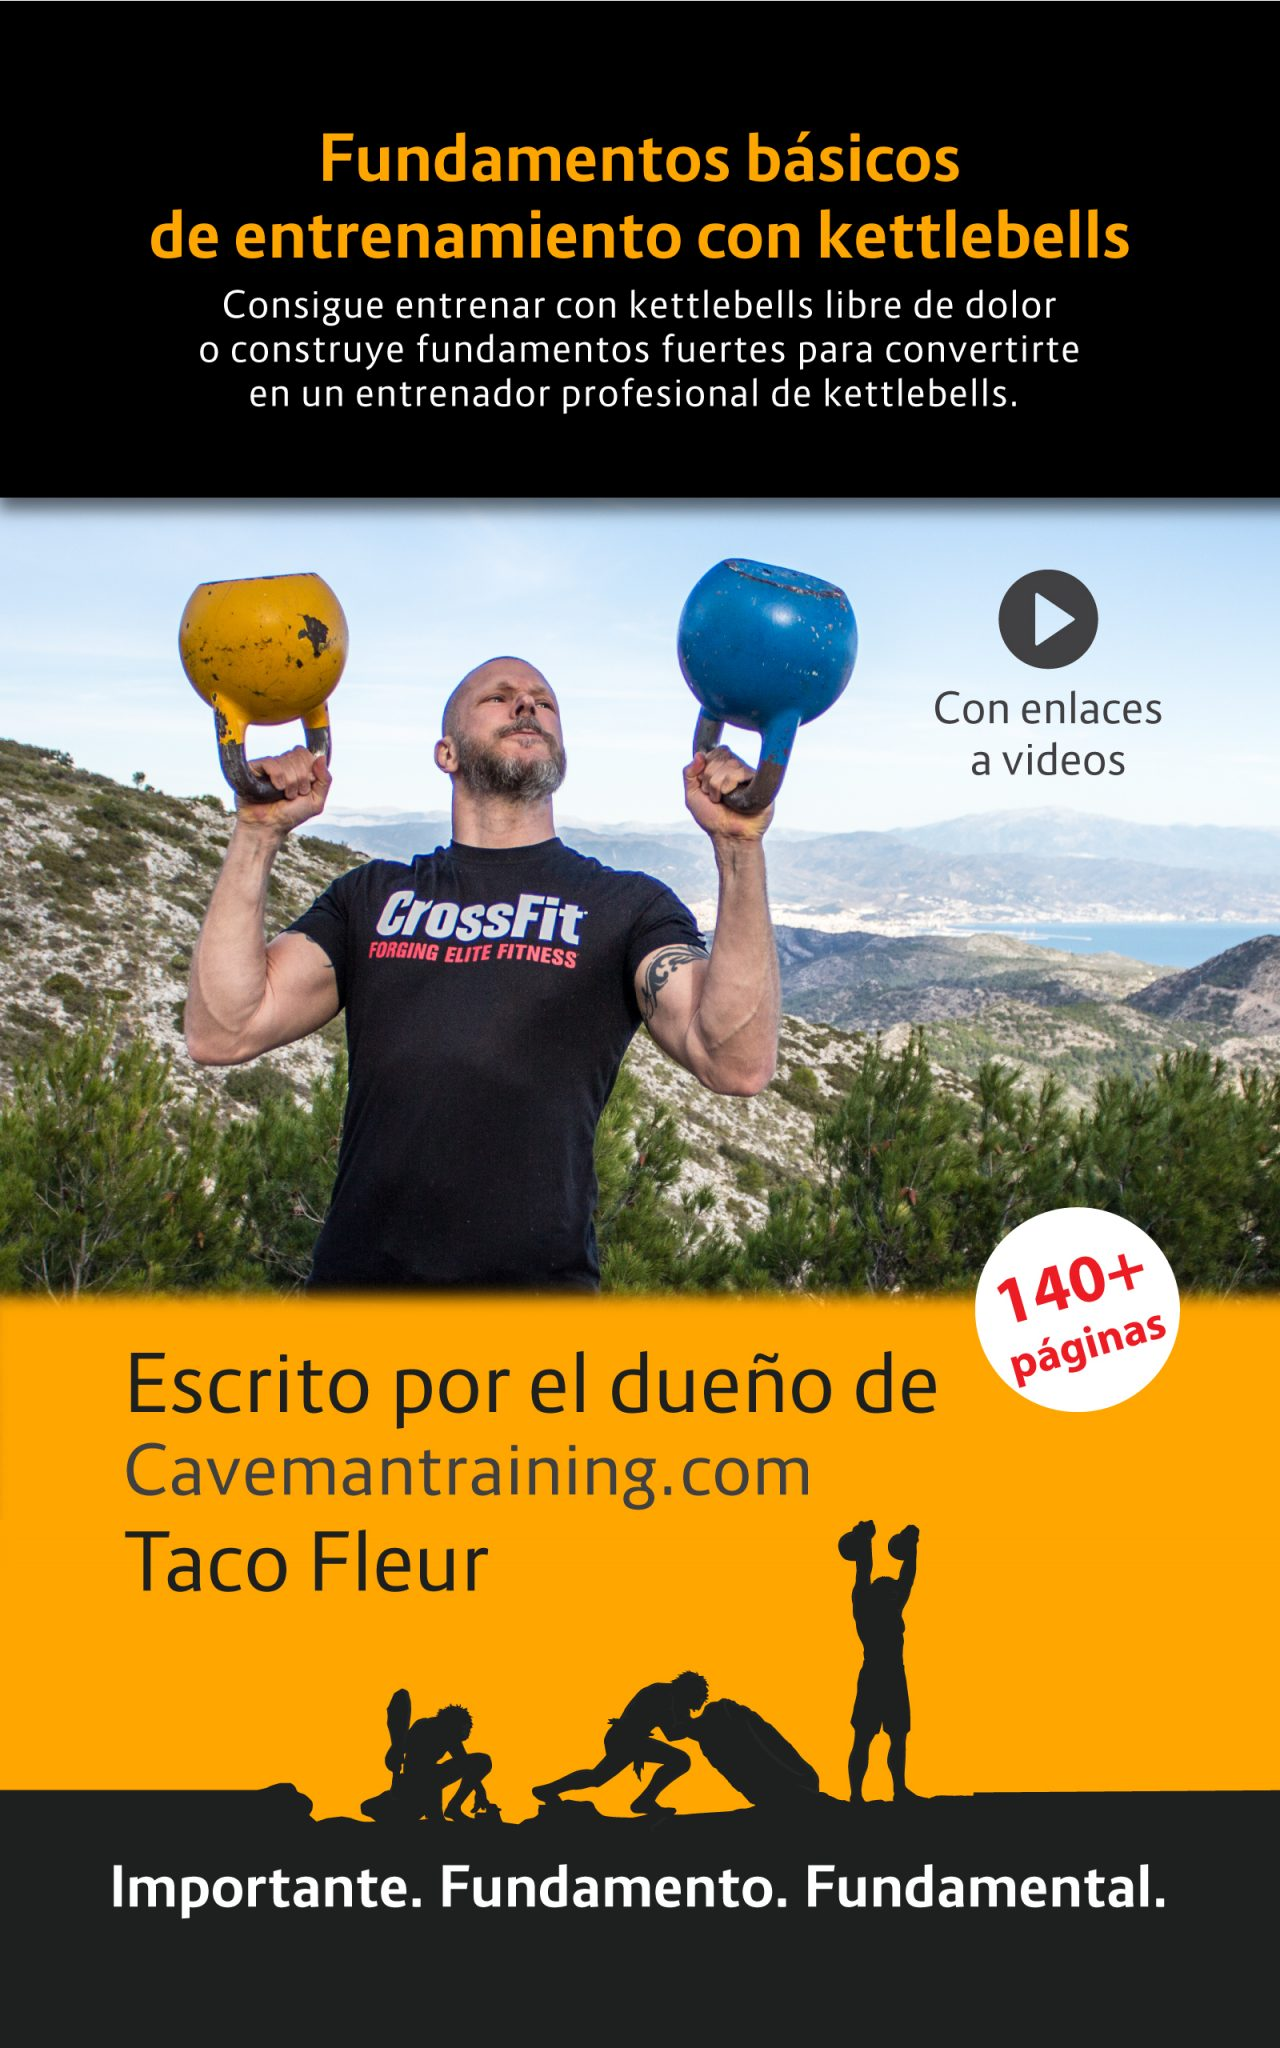 kettlebell-training-fundamentals-ebook-cover-2018-esp